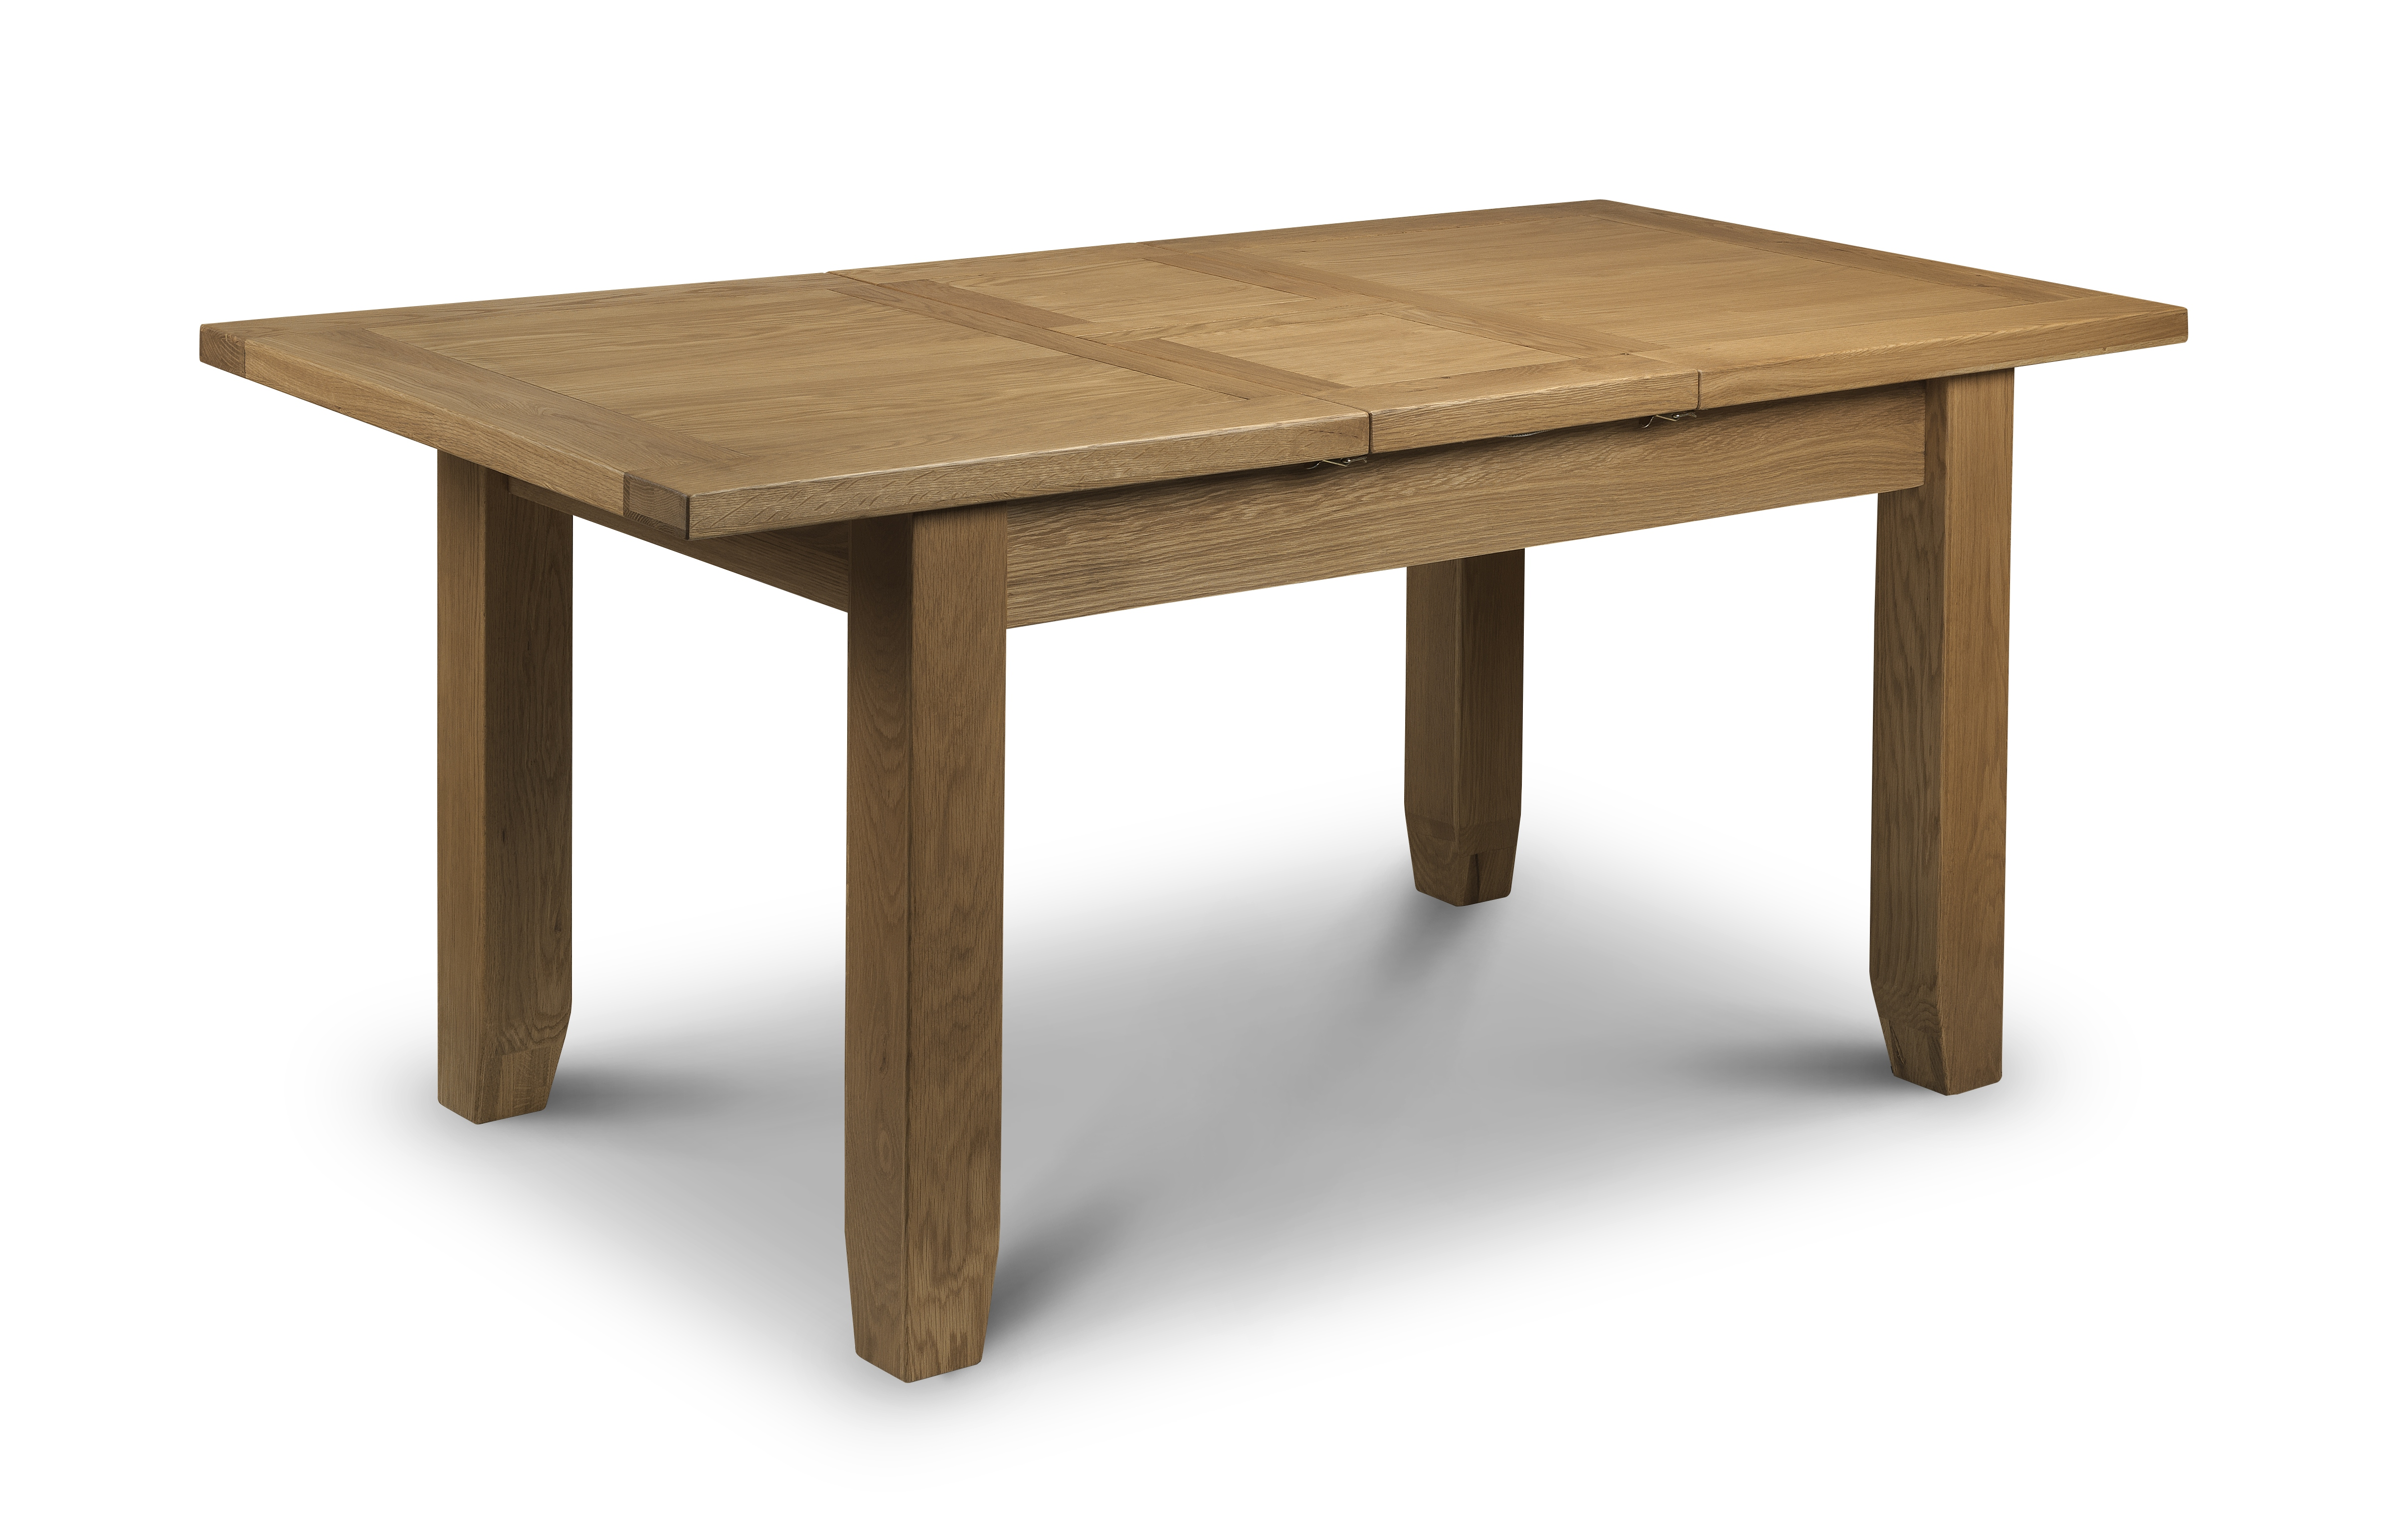 https://www.firstfurniture.co.uk/pub/media/catalog/product/p/a/padstow-oak-dining-table-open.jpg